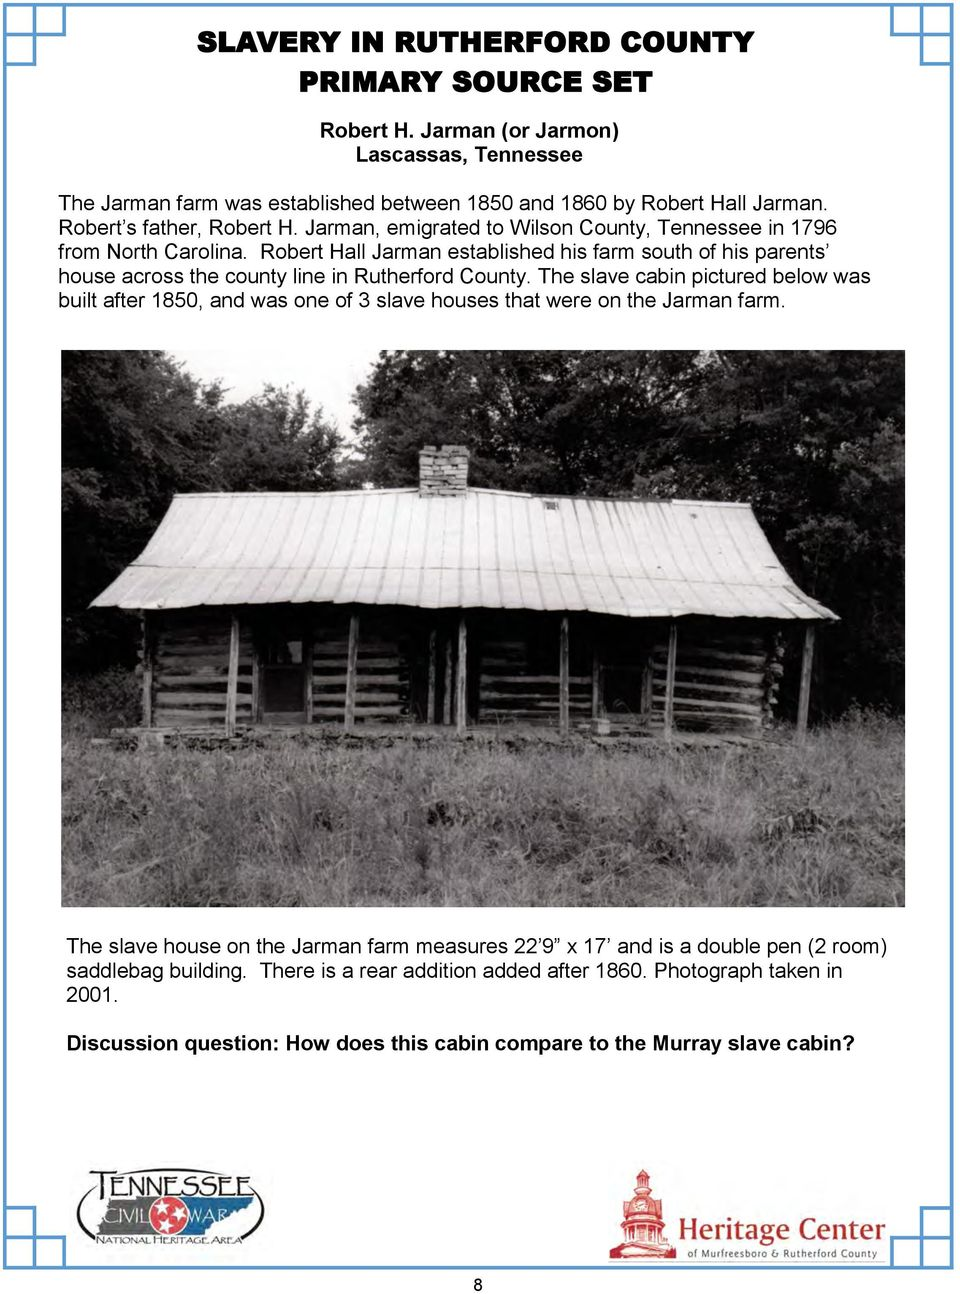 SLAVERY IN RUTHERFORD COUNTY PRIMARY SOURCE SET - PDF